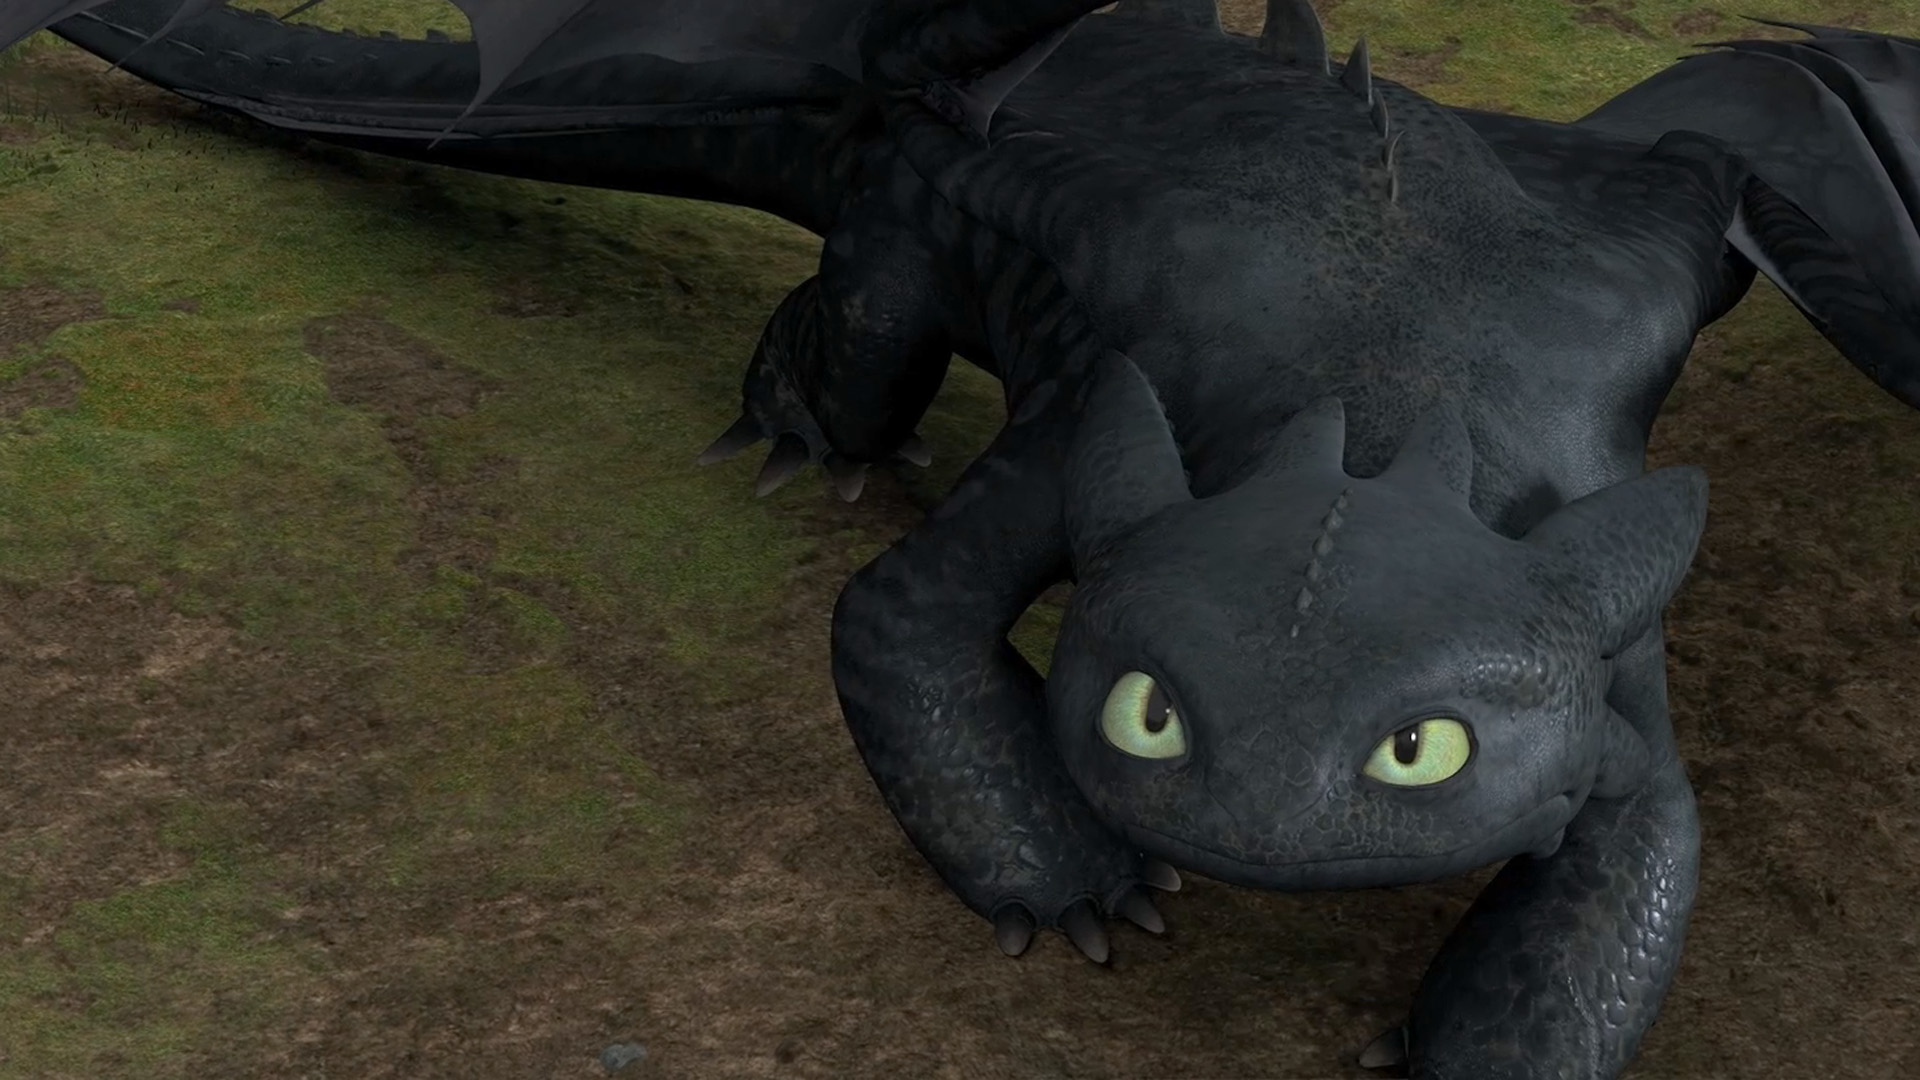 Toothless Dragon Wallpaper Images Pictures   Becuo 1920x1080